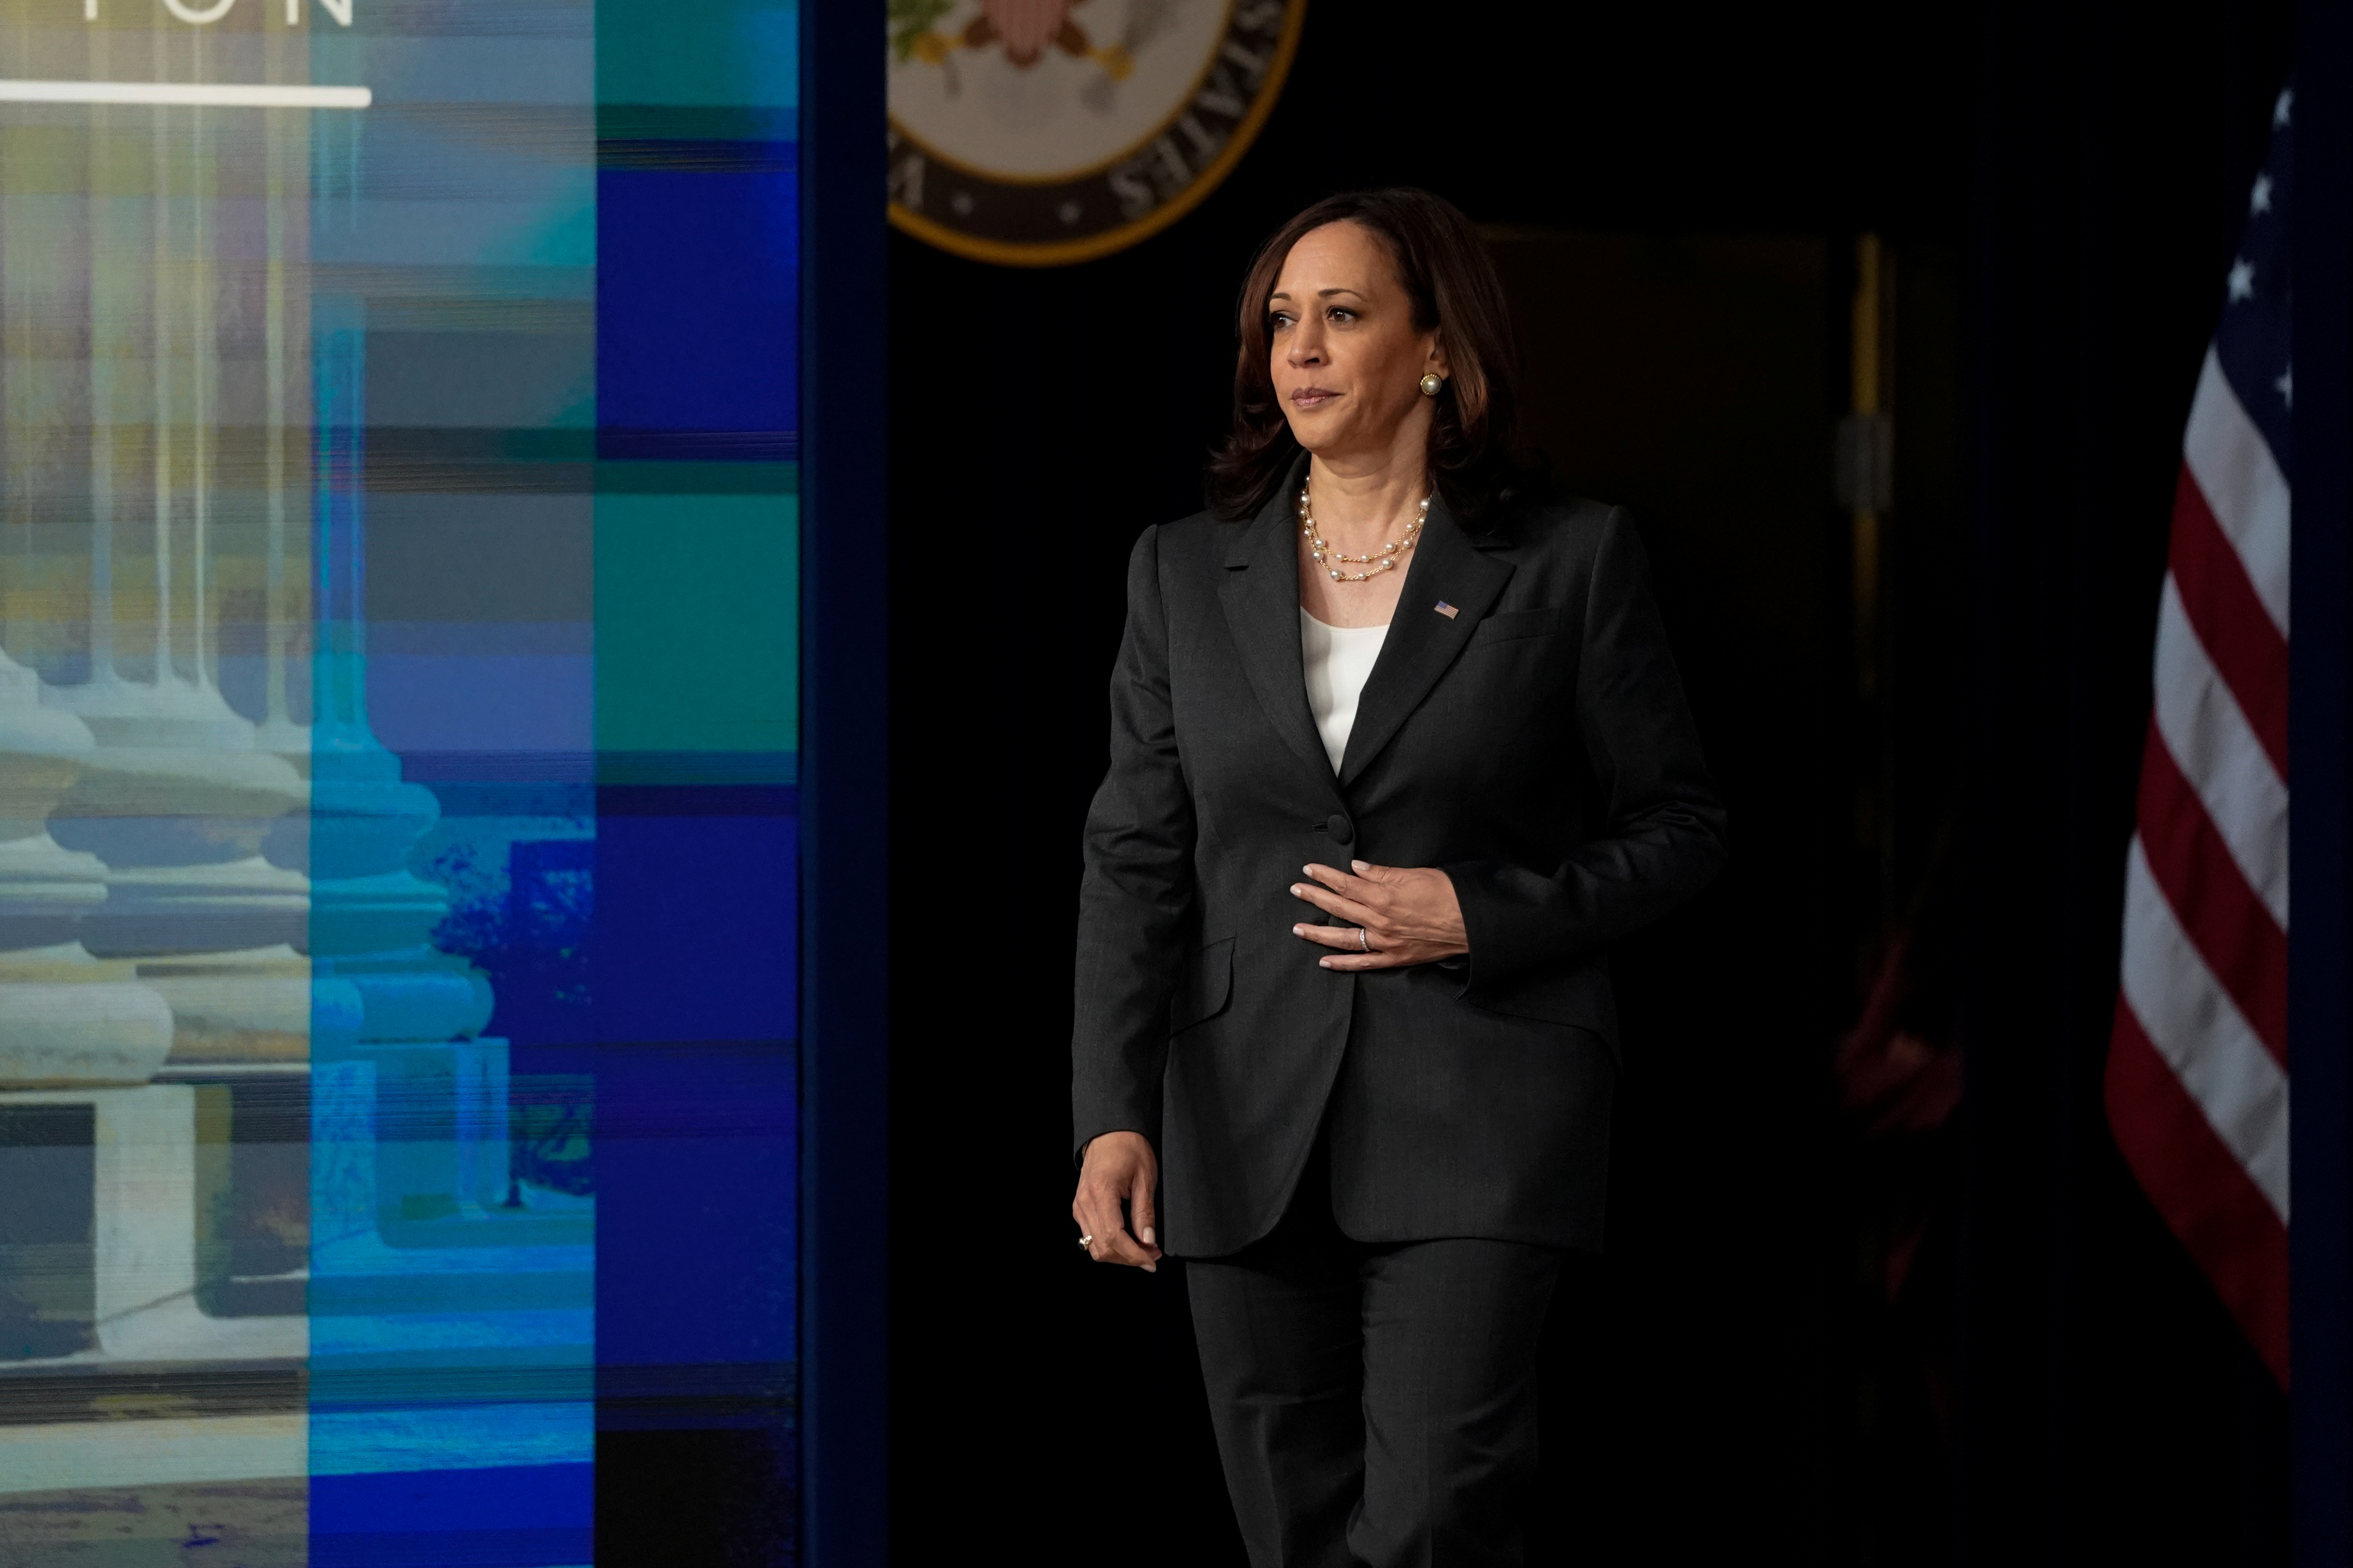 U.S. Vice President Kamala Harris walks on stage to deliver virtual remarks to the National Bar Association in the Eisenhower Executive Office Building's South Court Auditorium at the White House in Washington, U.S., July 27, 2021. REUTERS/Elizabeth Frantz/Pool/Files